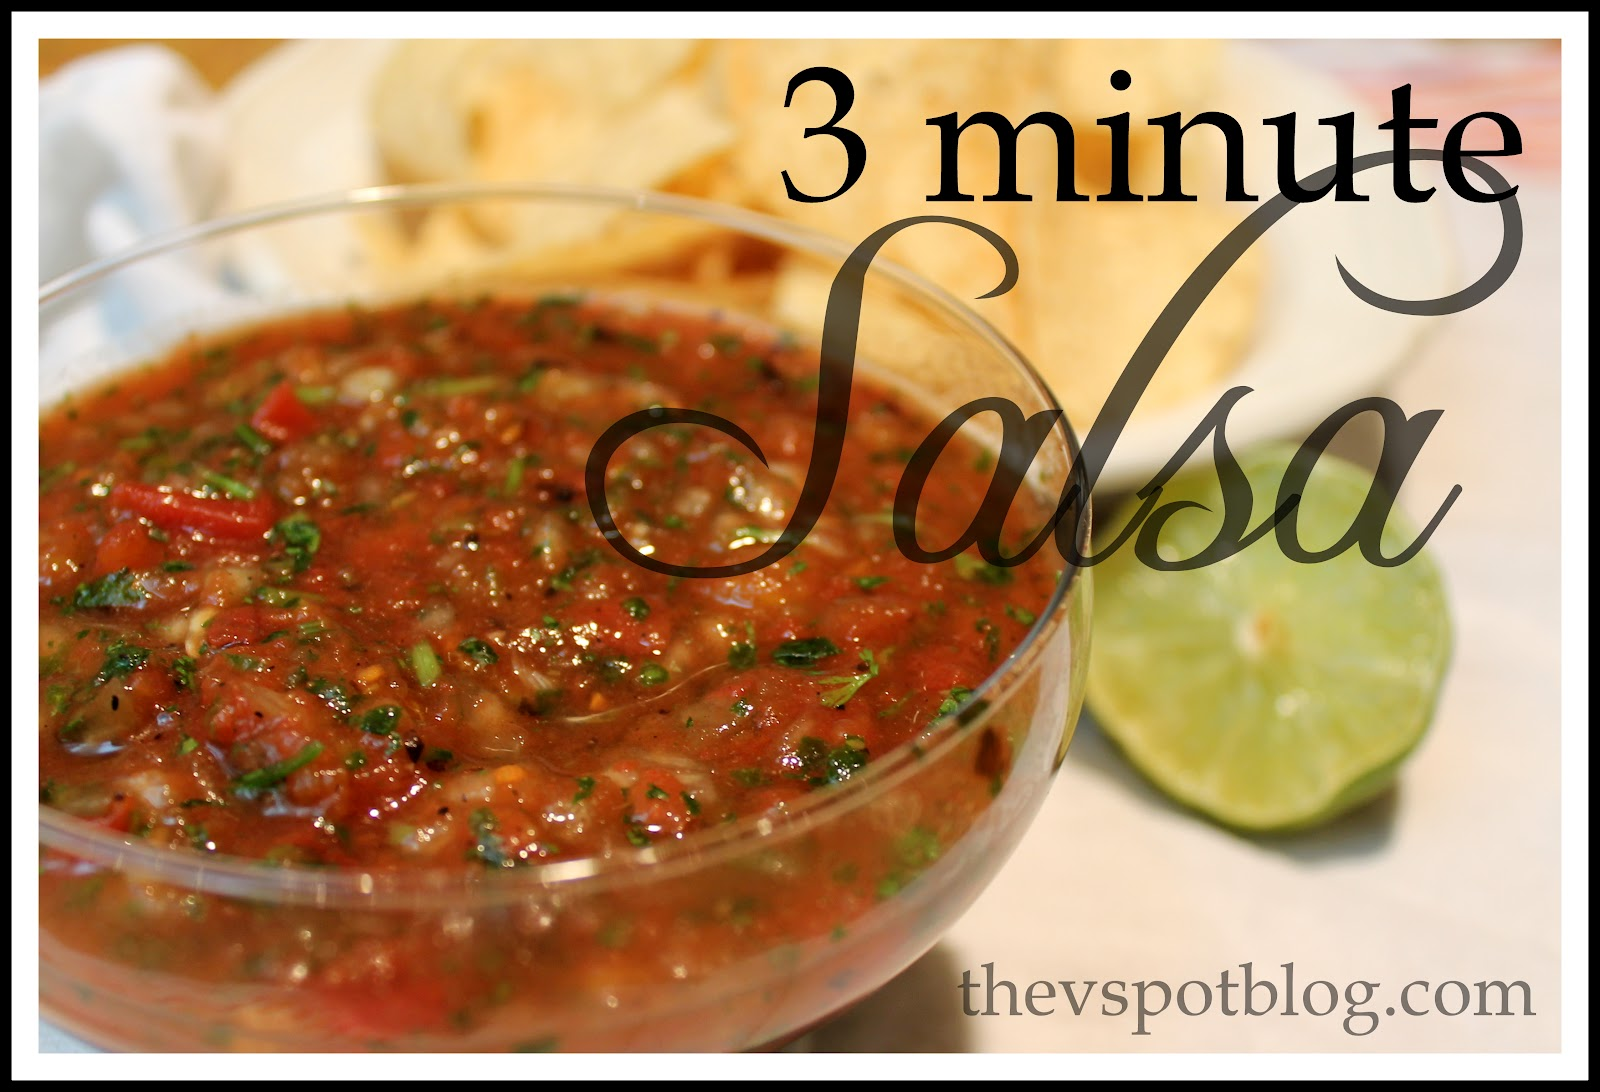 The Easiest Salsa Ever! Simple, fresh ingredients and you can make in ...